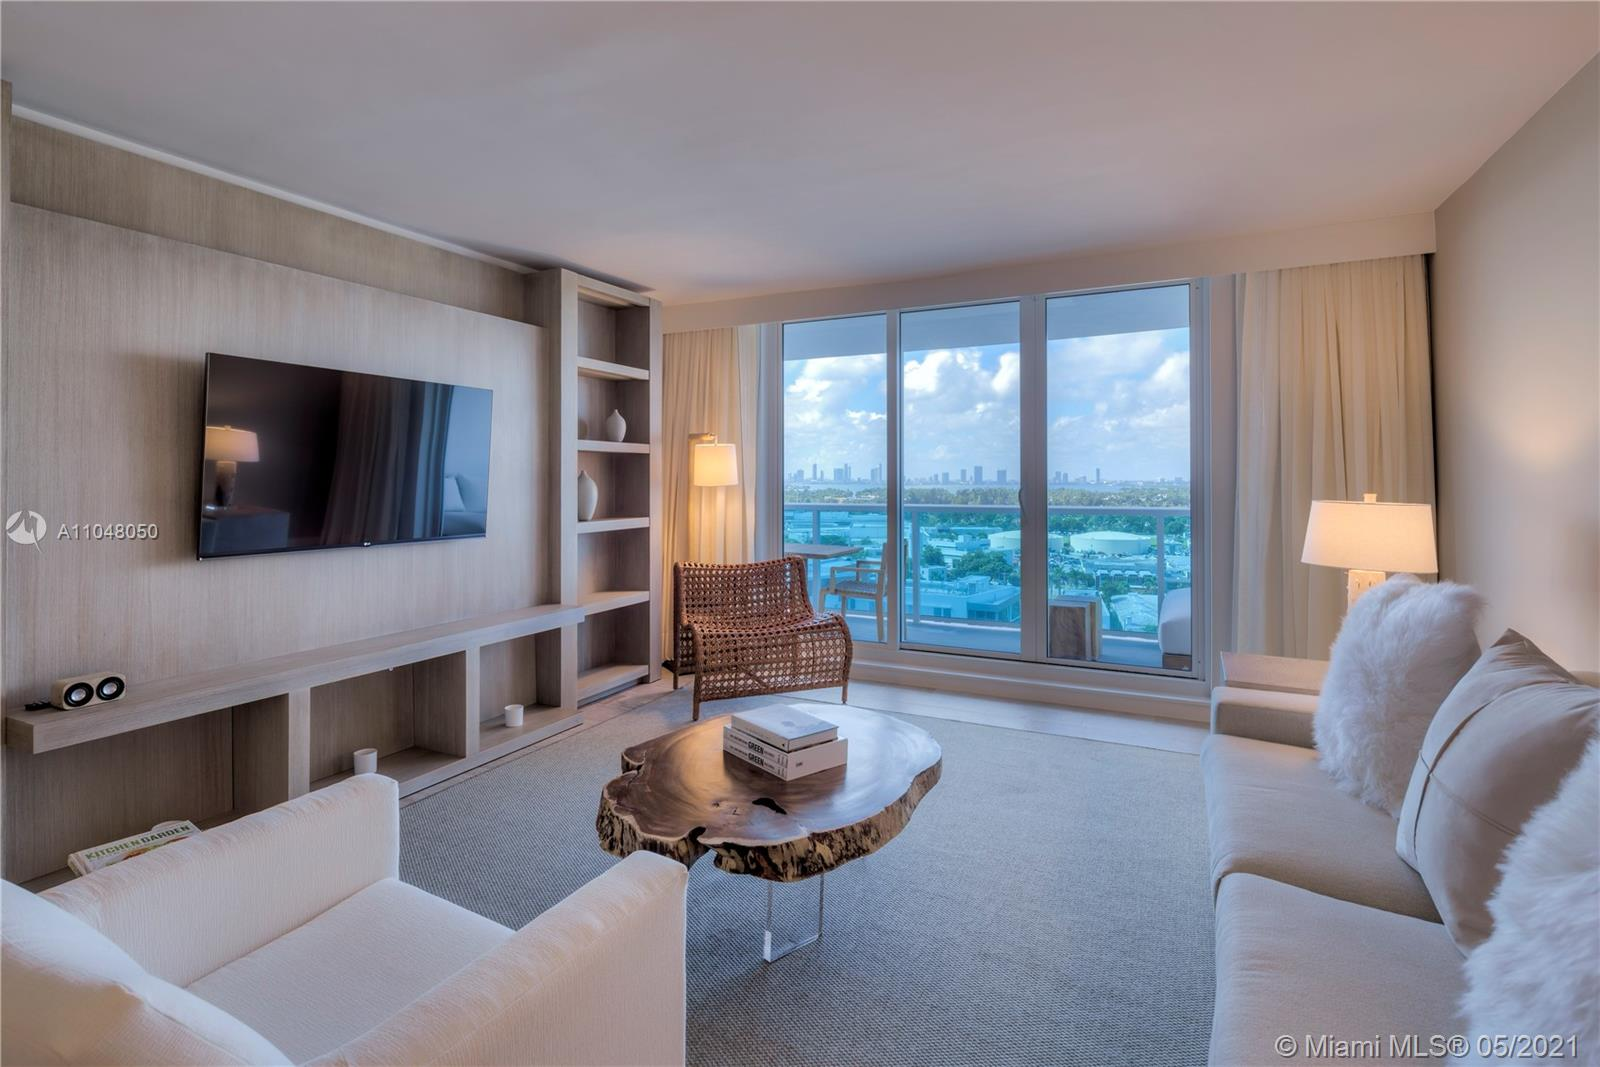 Gorgeous 1 bedroom luxury condo renting between 30%-60% below hotel rates. All of our properties come with luxurious linens and towels. Residences come with fully furnished private balcony with views of the Miami Skyline. plus living room sofa that converts into a queen bed. Our guests have access to all of the hotel amenities, spa, gym, 4 pool, 8 restaurants, beach service, cabanas, spa, valet service, ballroom, conferences and more!